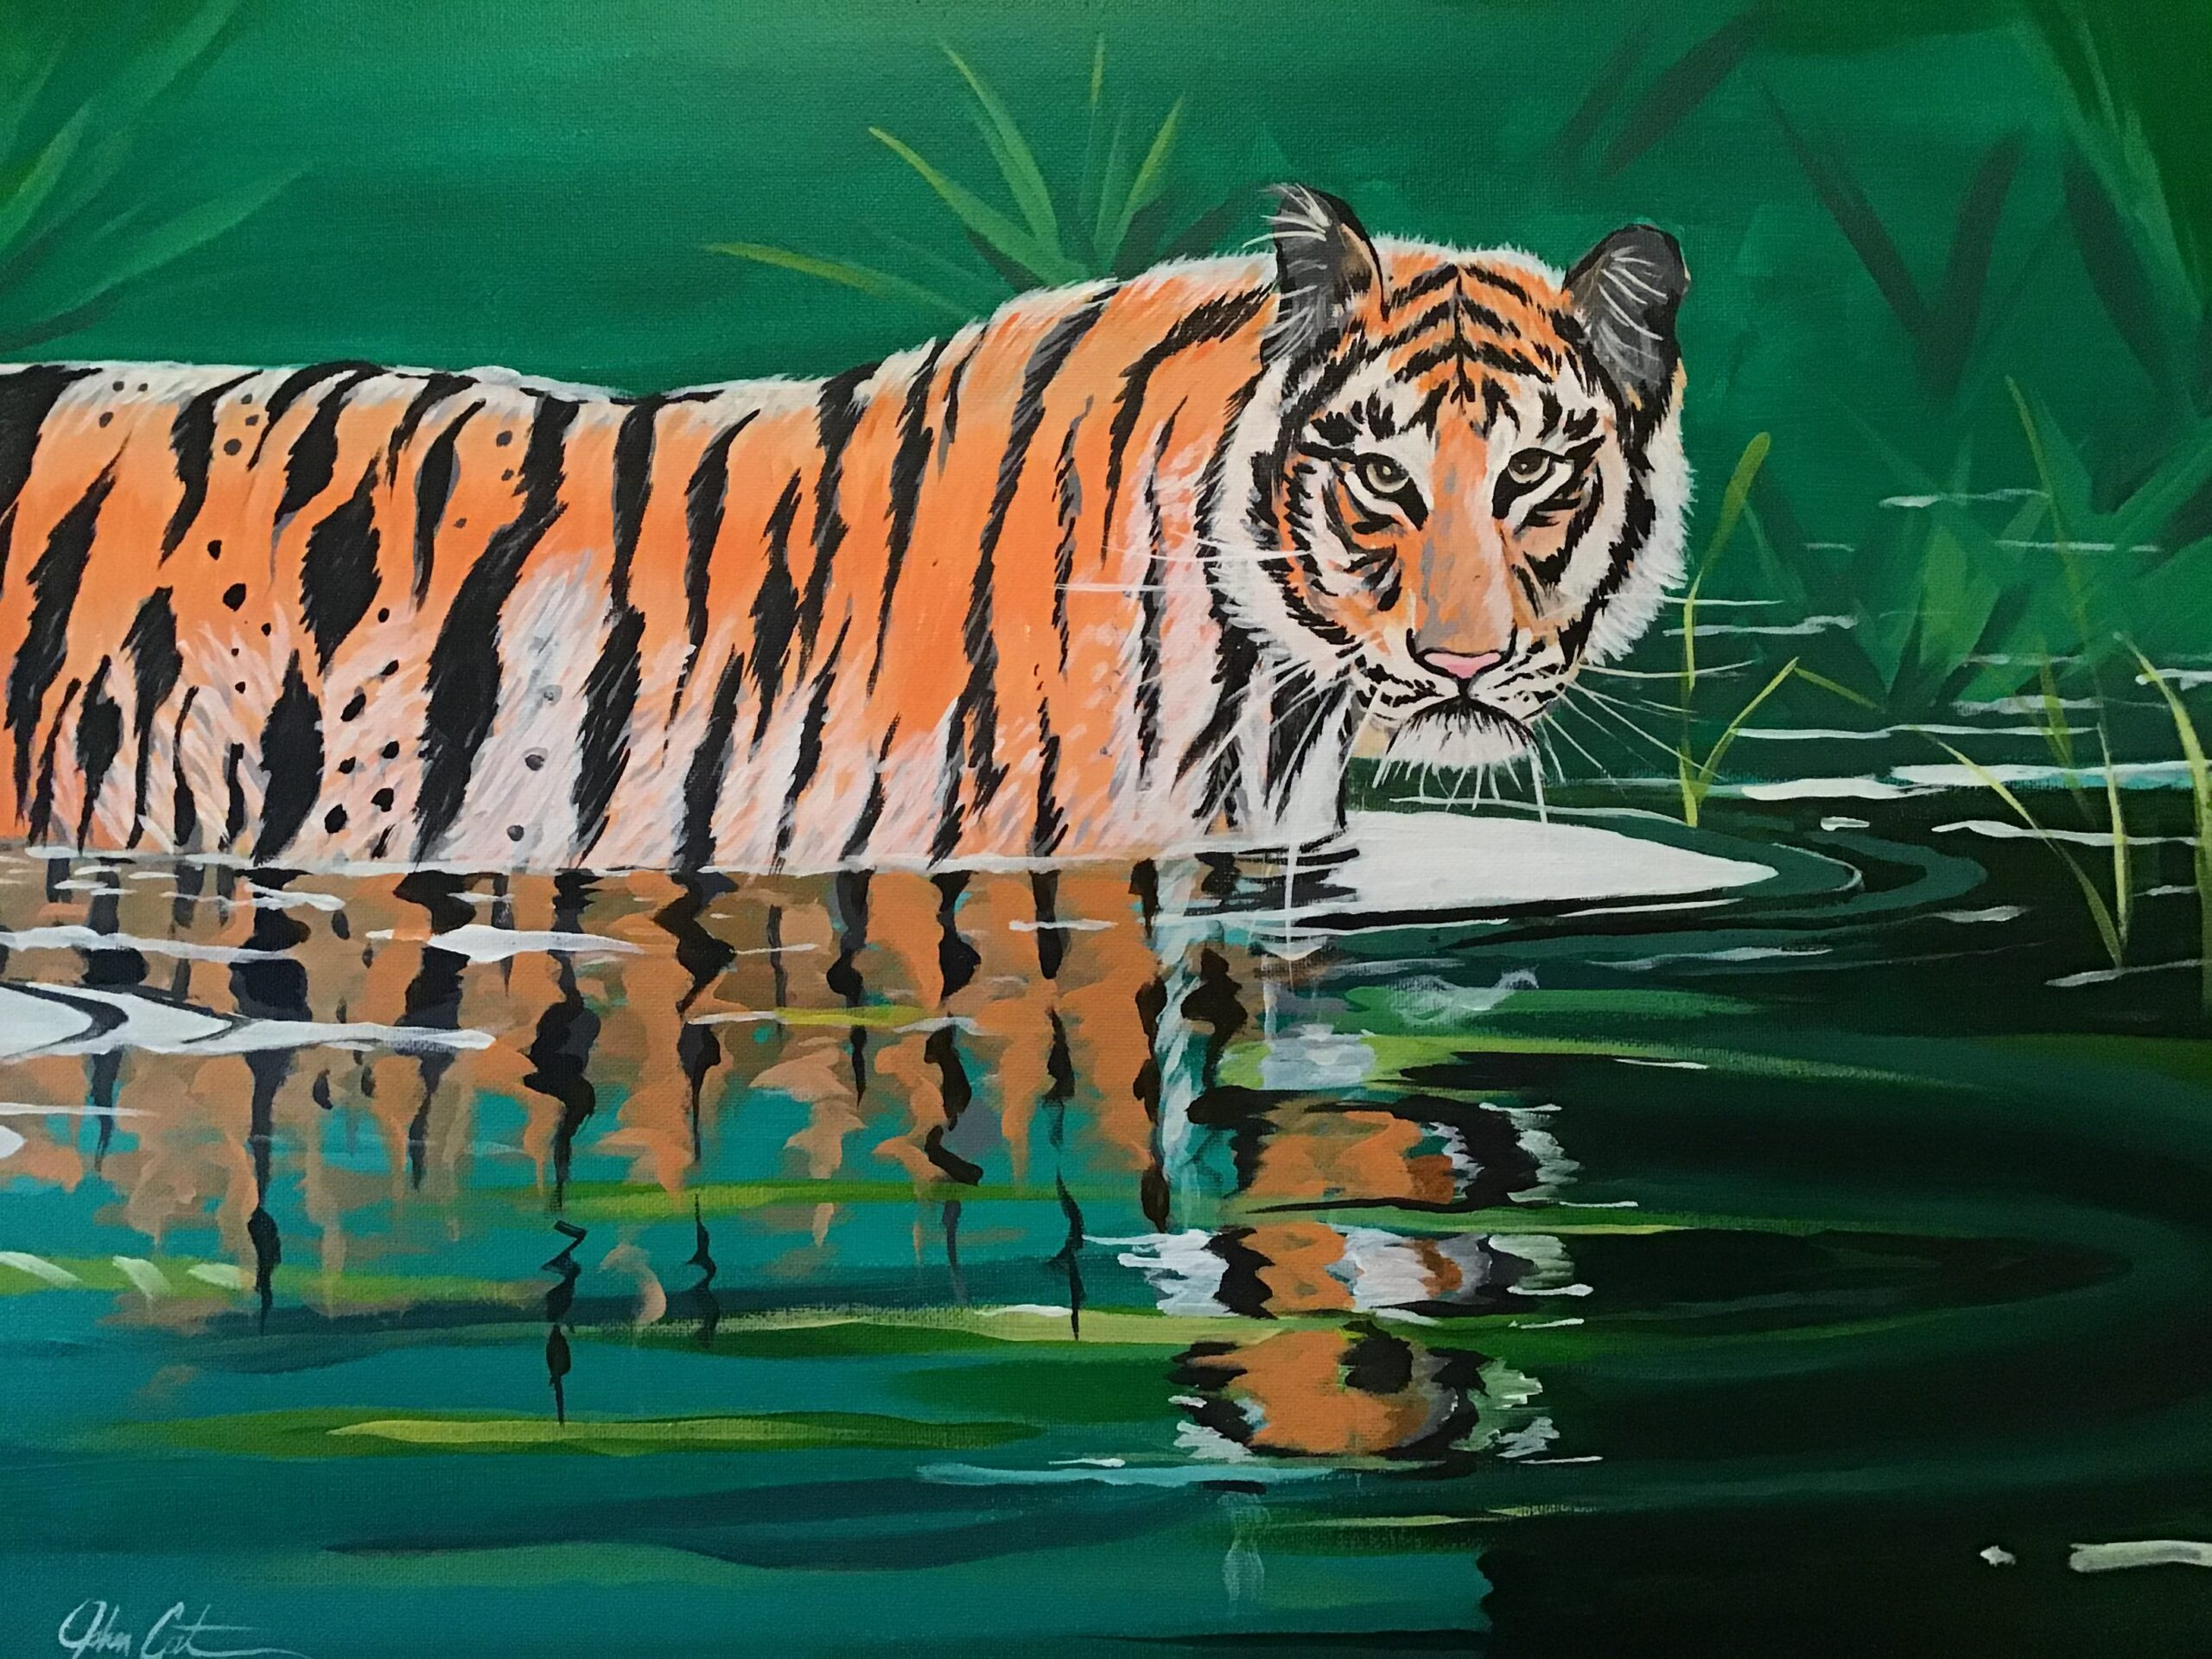 Tiger walking in water shows reflection